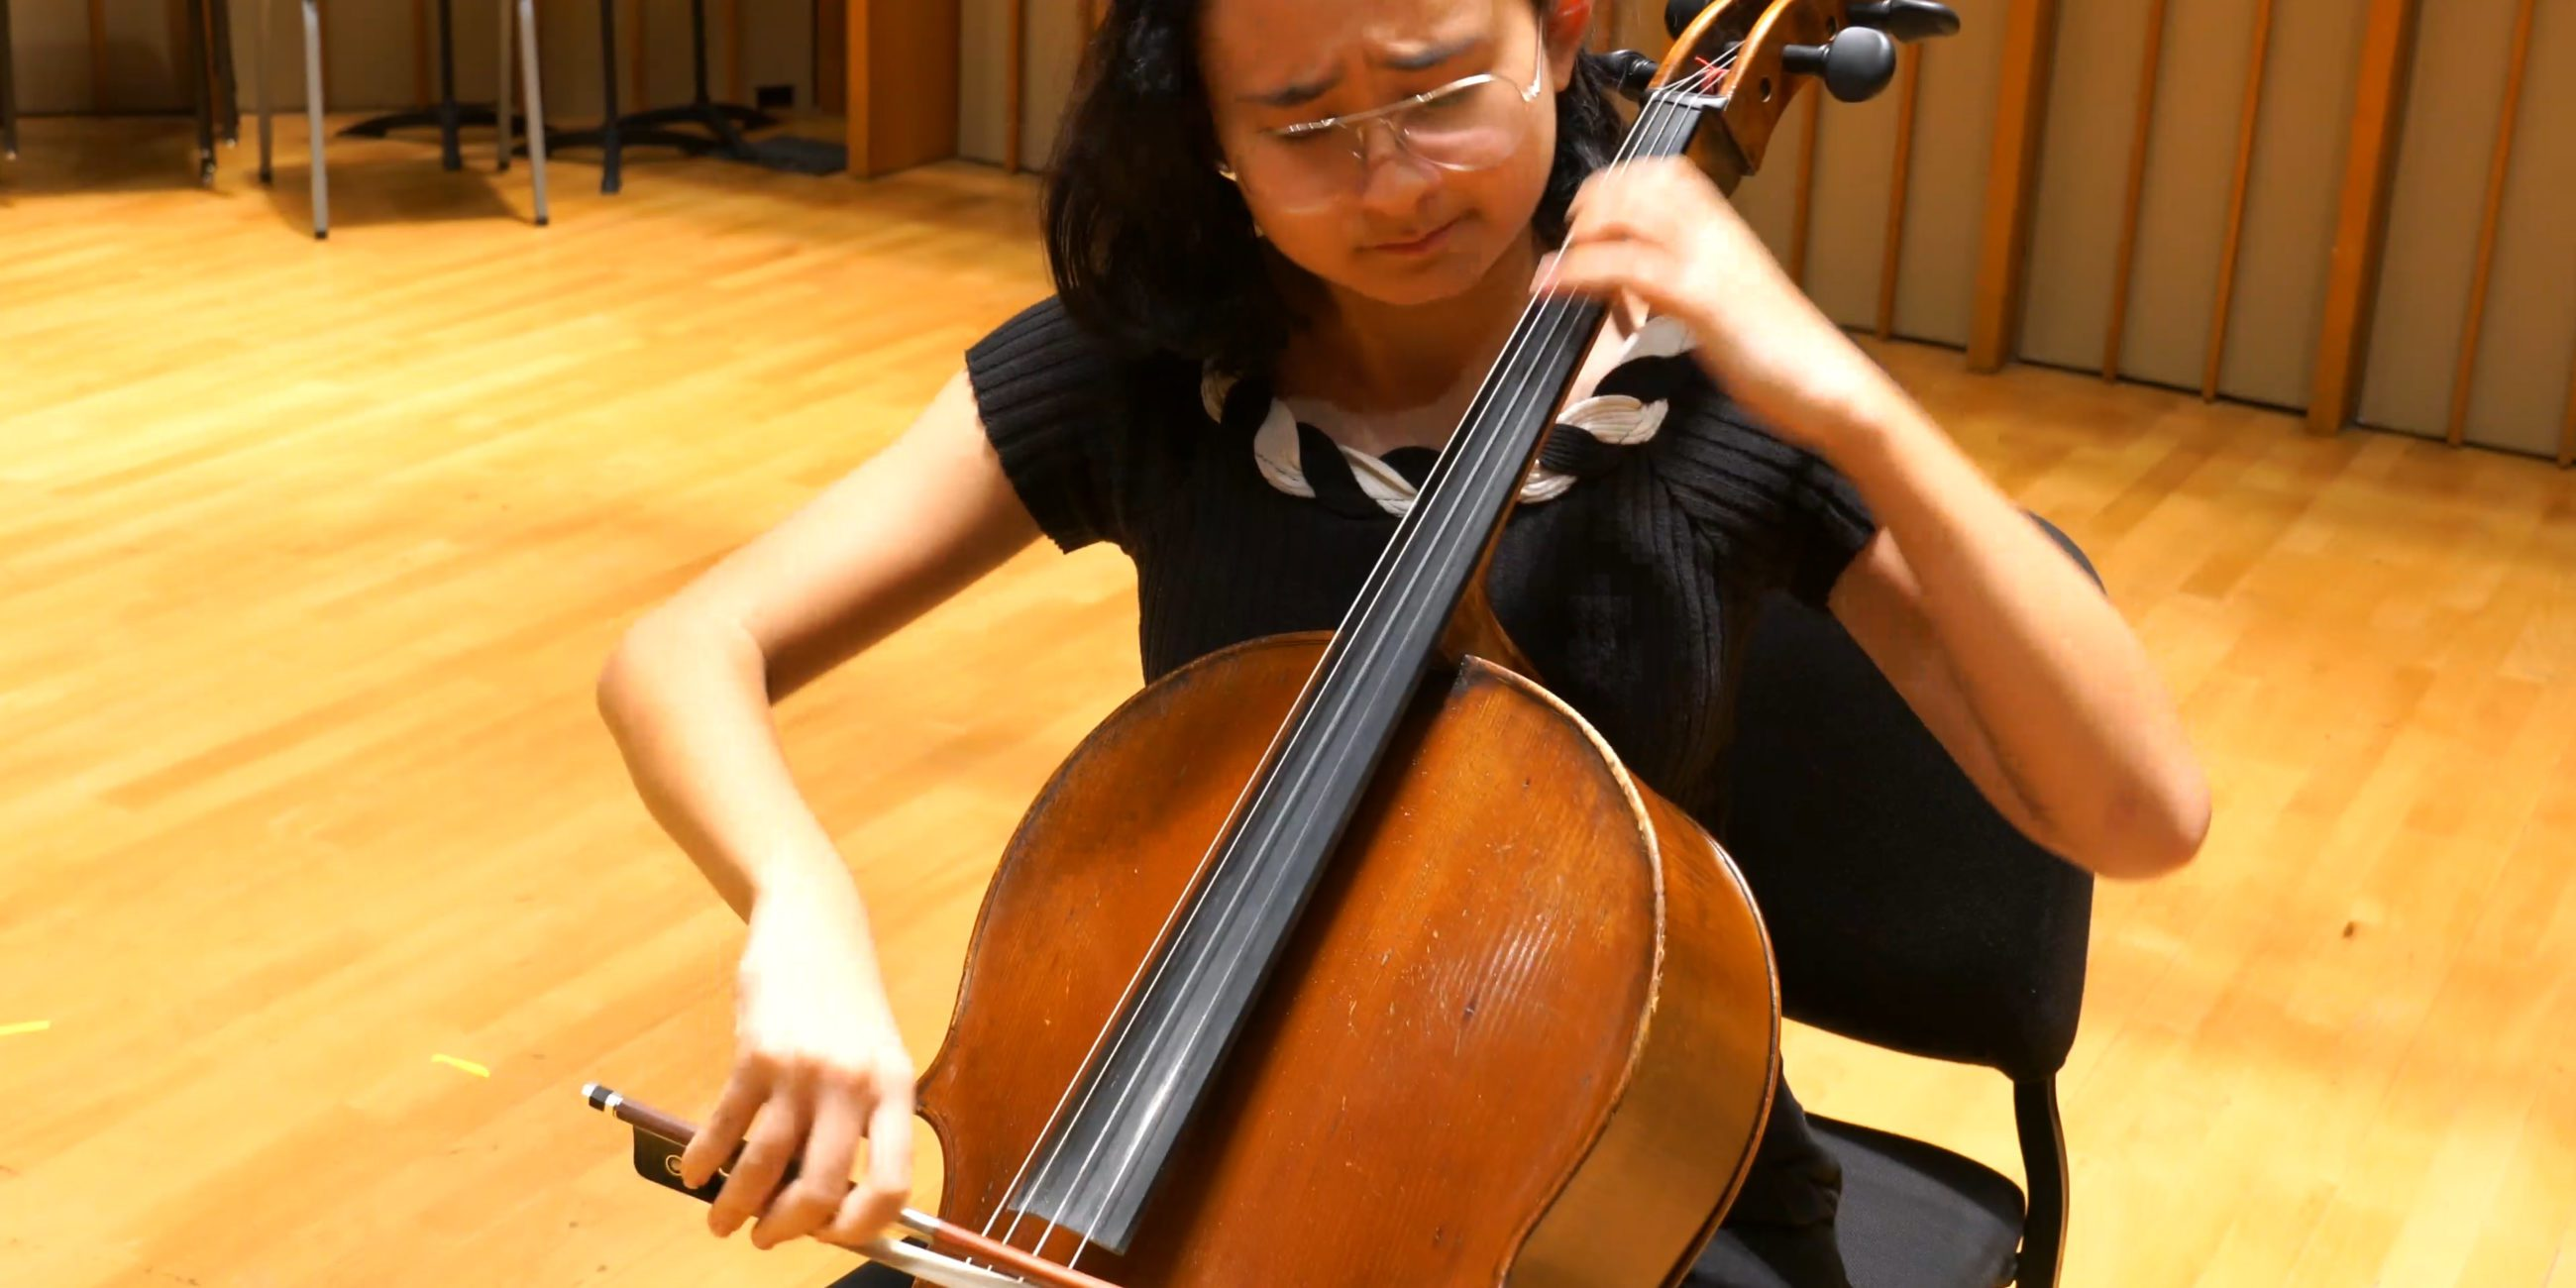 Sarah Kave performs Bach on cello.